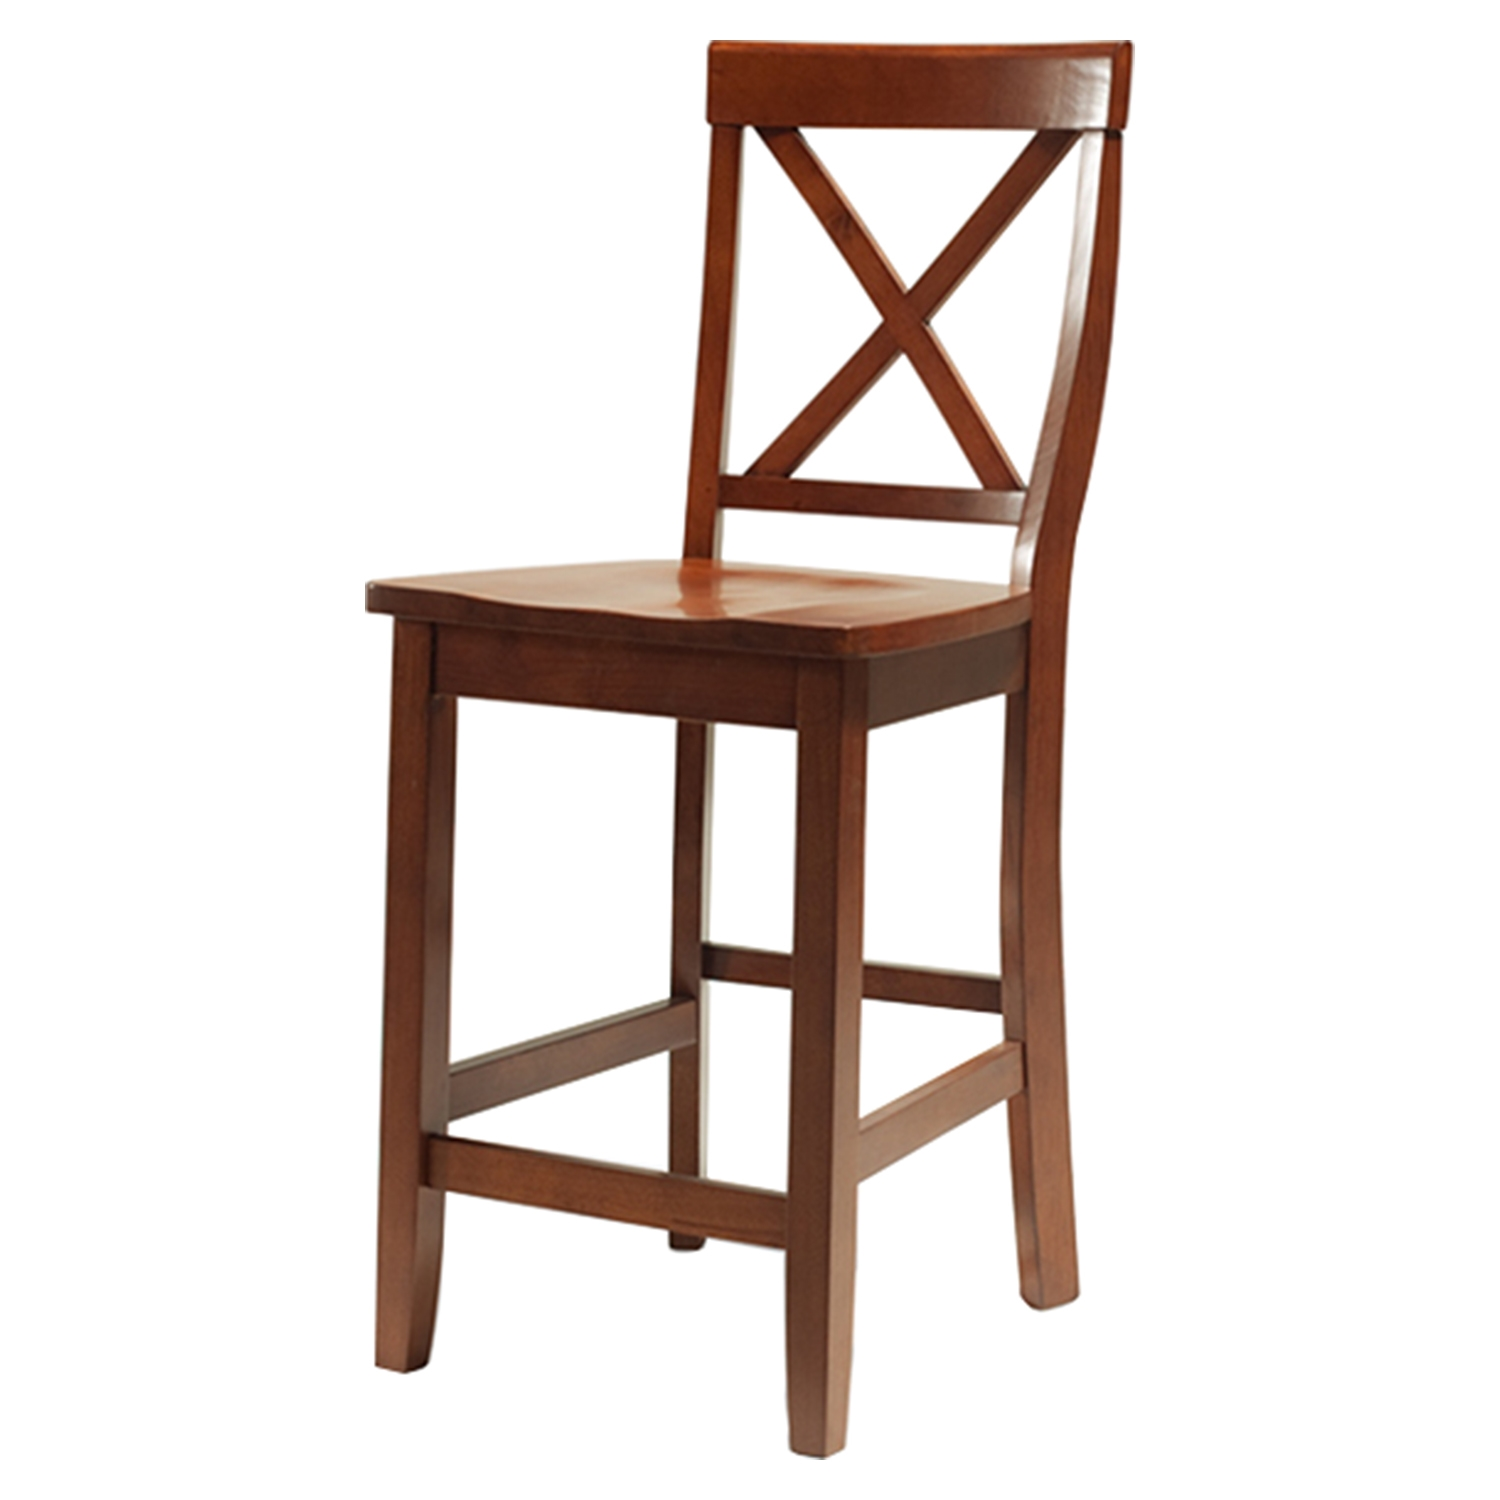 X Back Bar Stool With 24 Inch Seat Height Classic Cherry